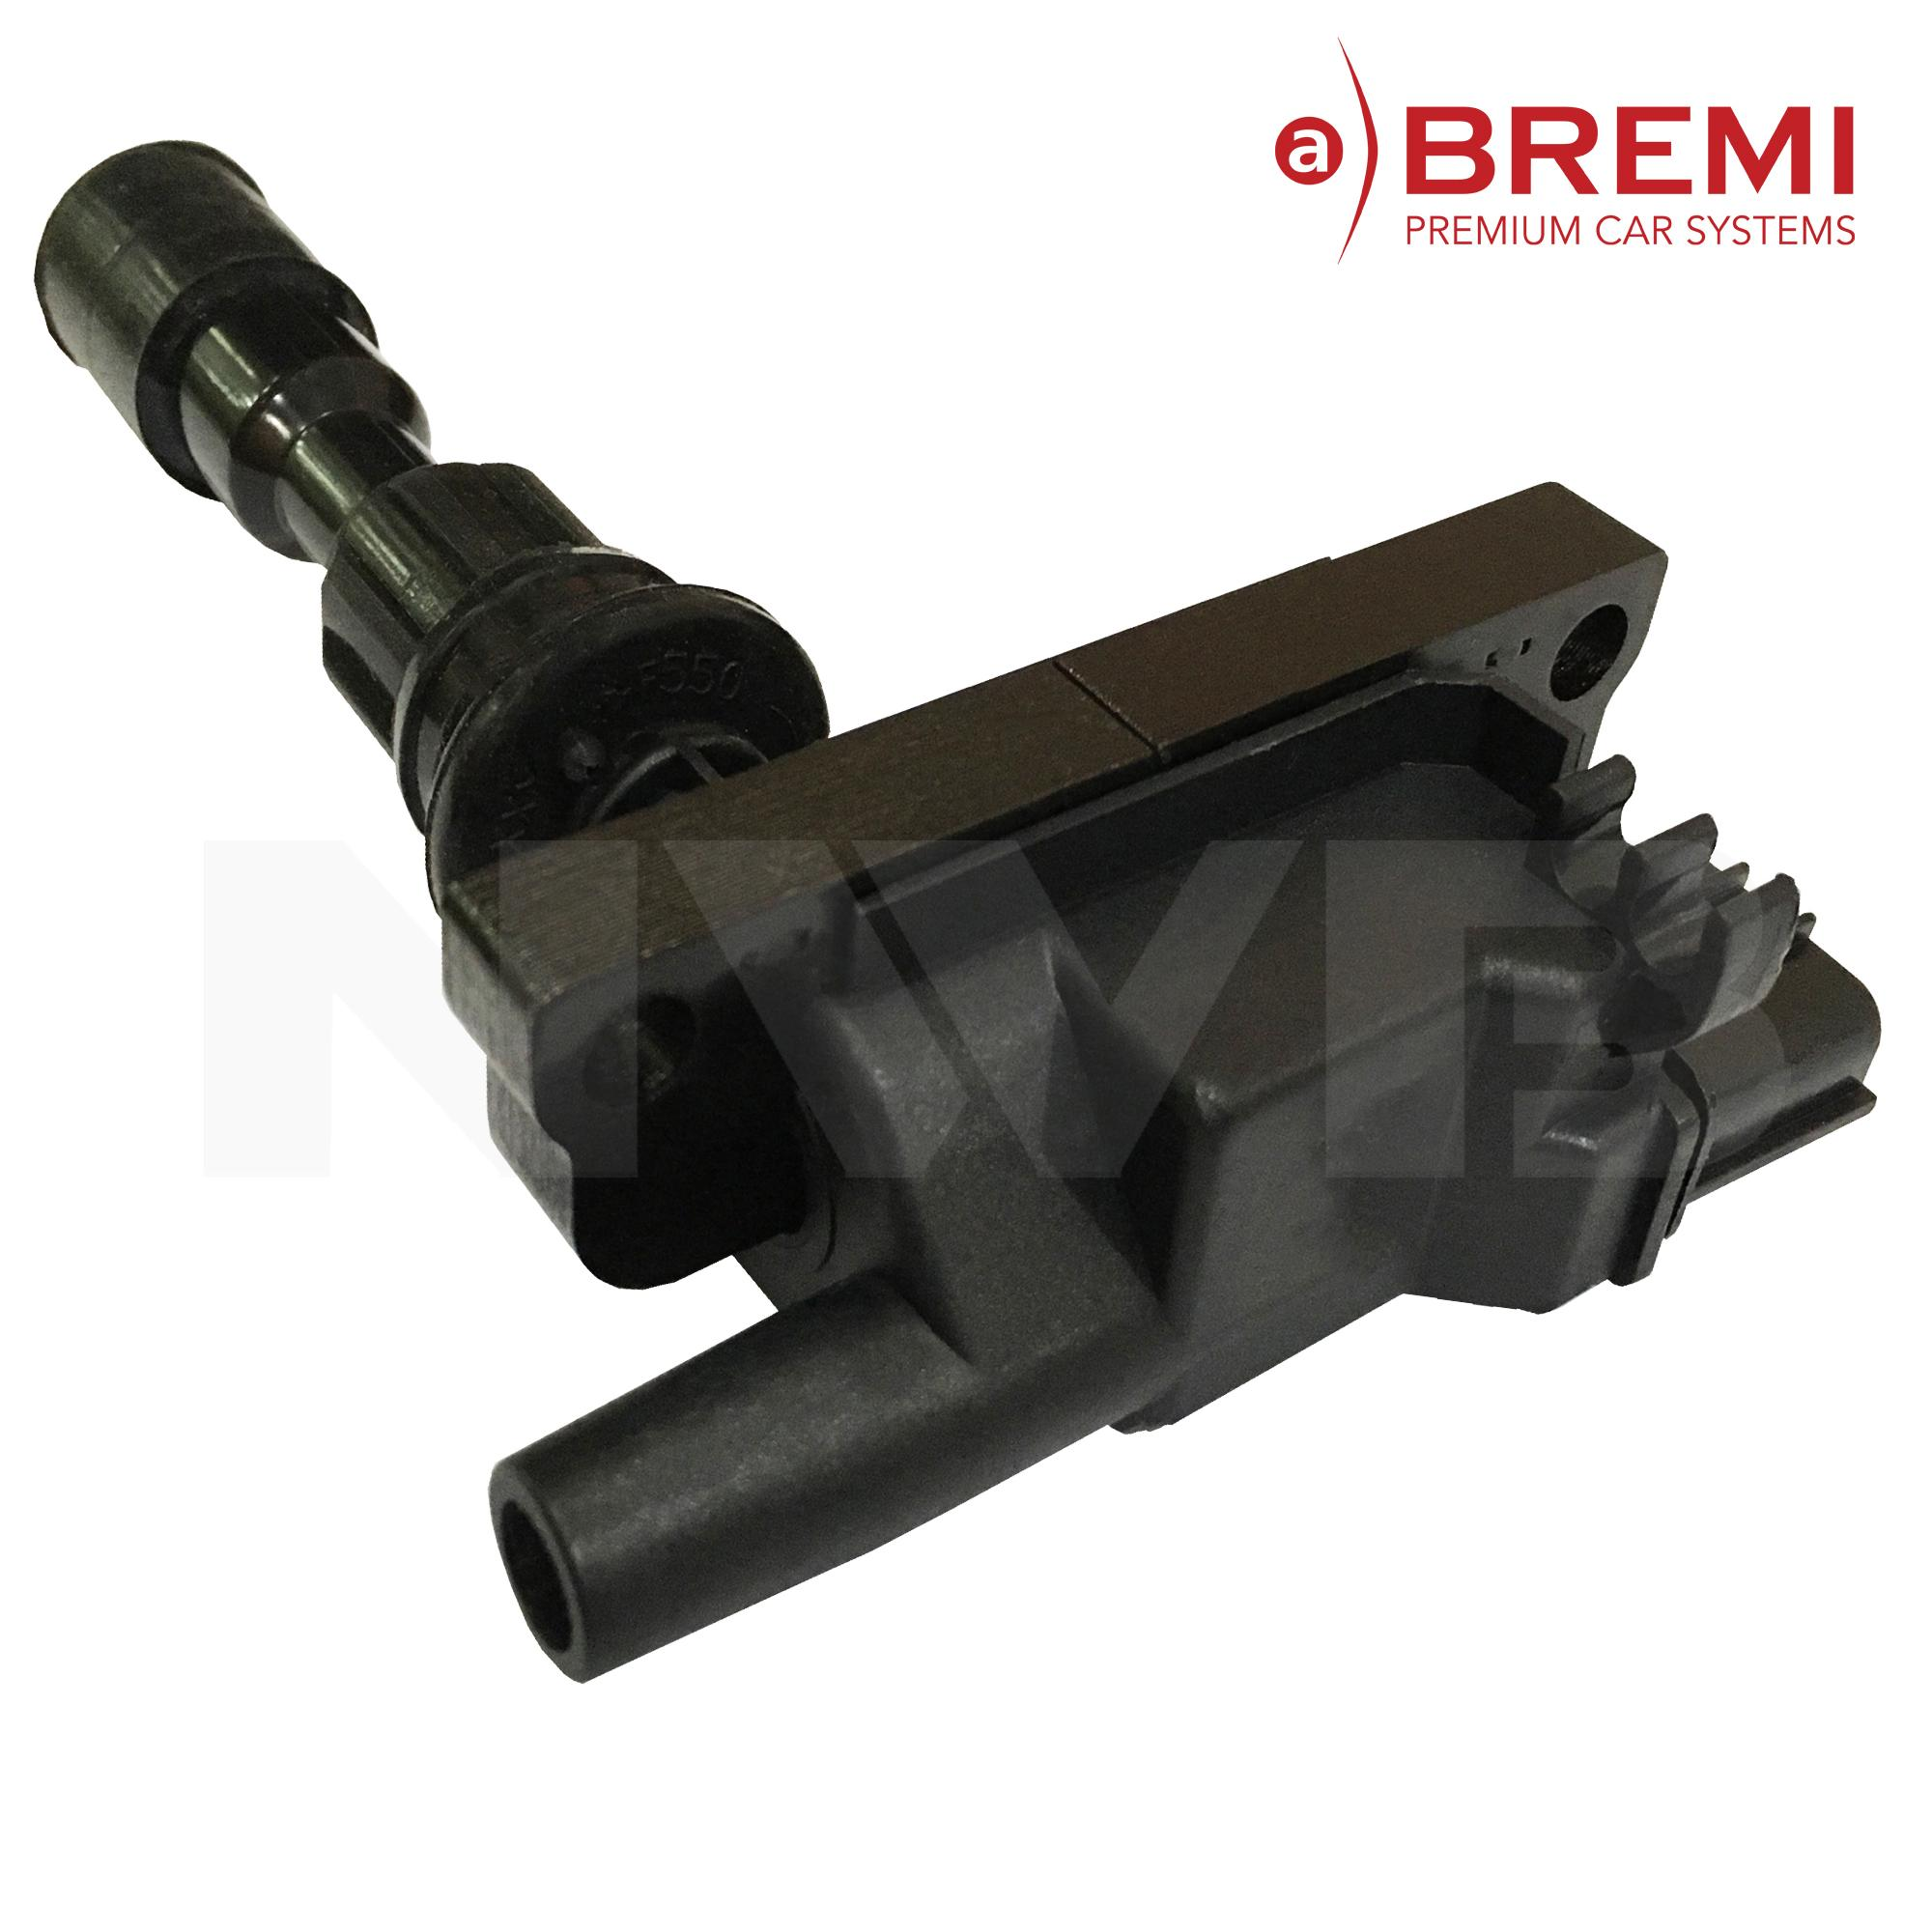 Bremi Ignition Coil for Ford Lynx 1 6 1999-2005